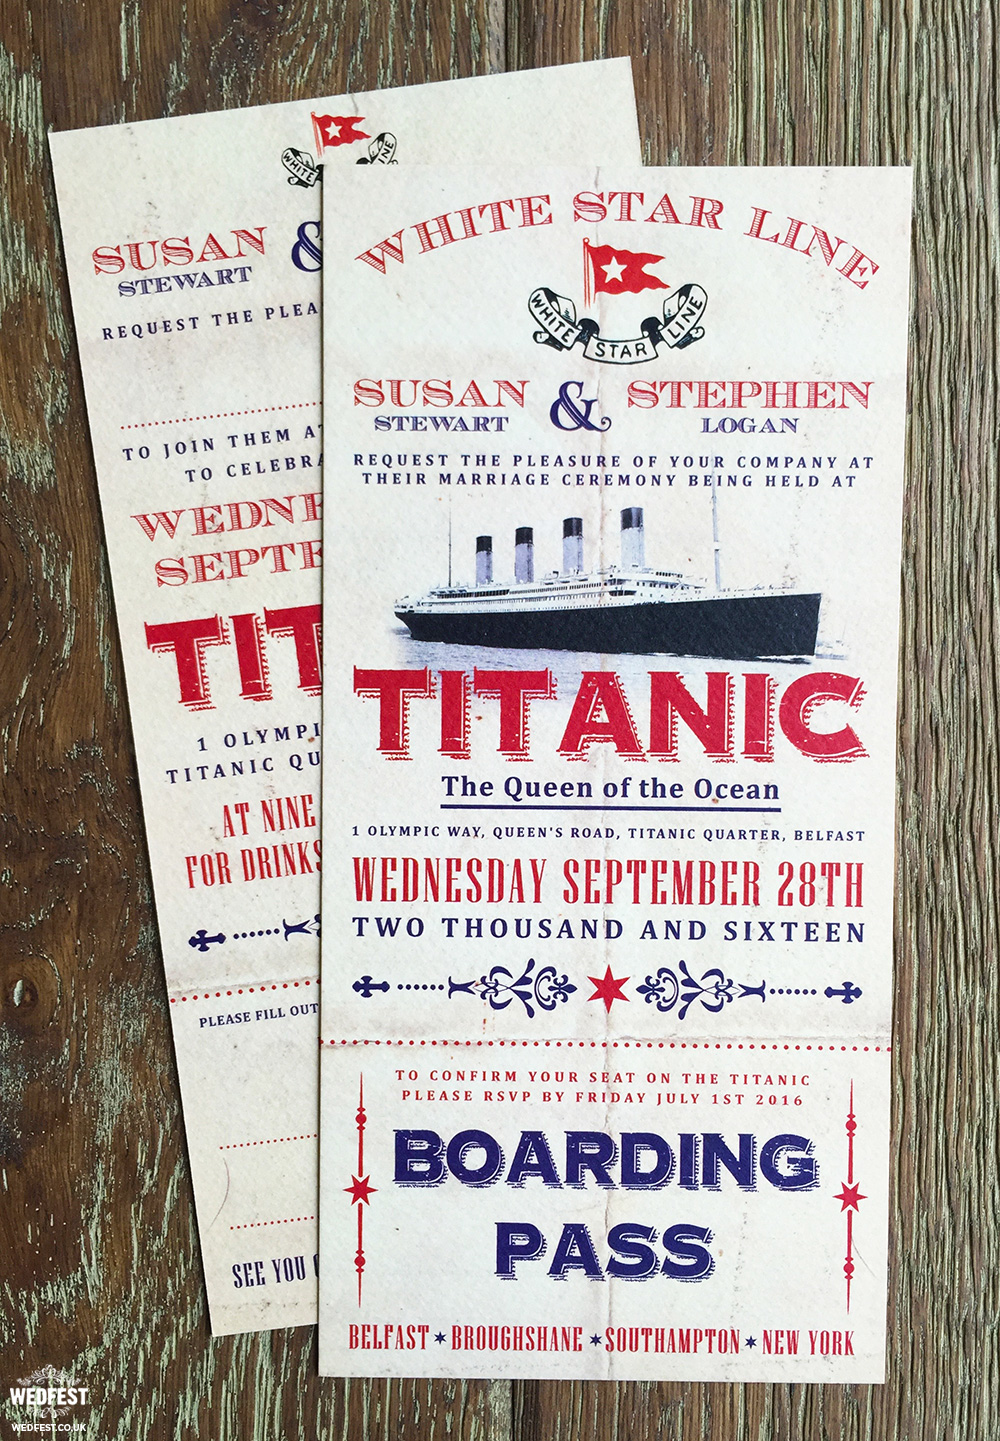 Titanic Themed Wedding Invitations | WEDFEST